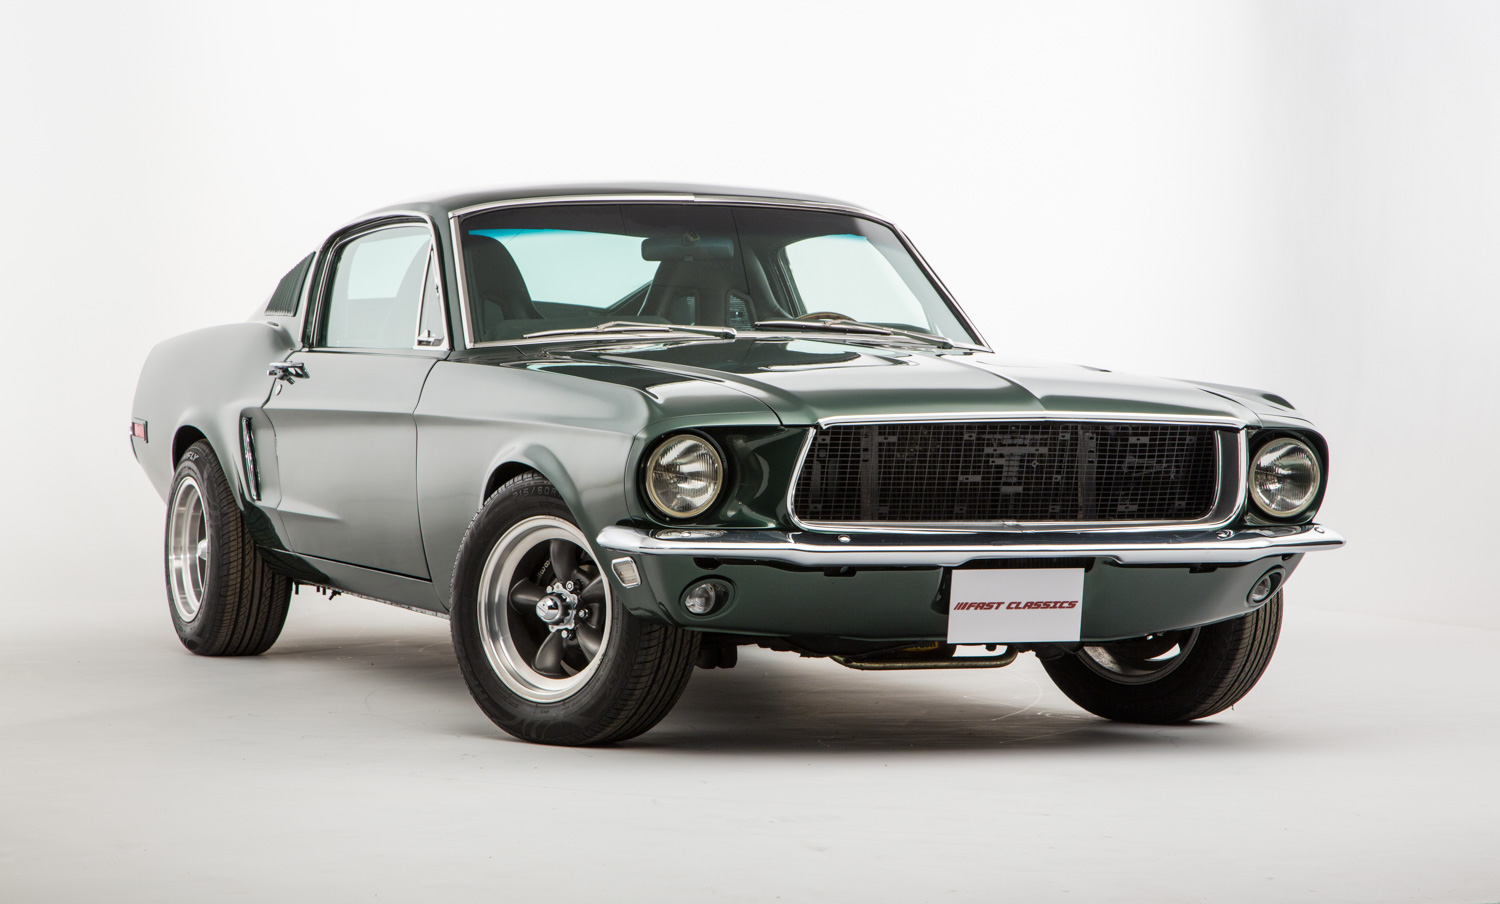 Ford Mustang Fastback Fast Classics